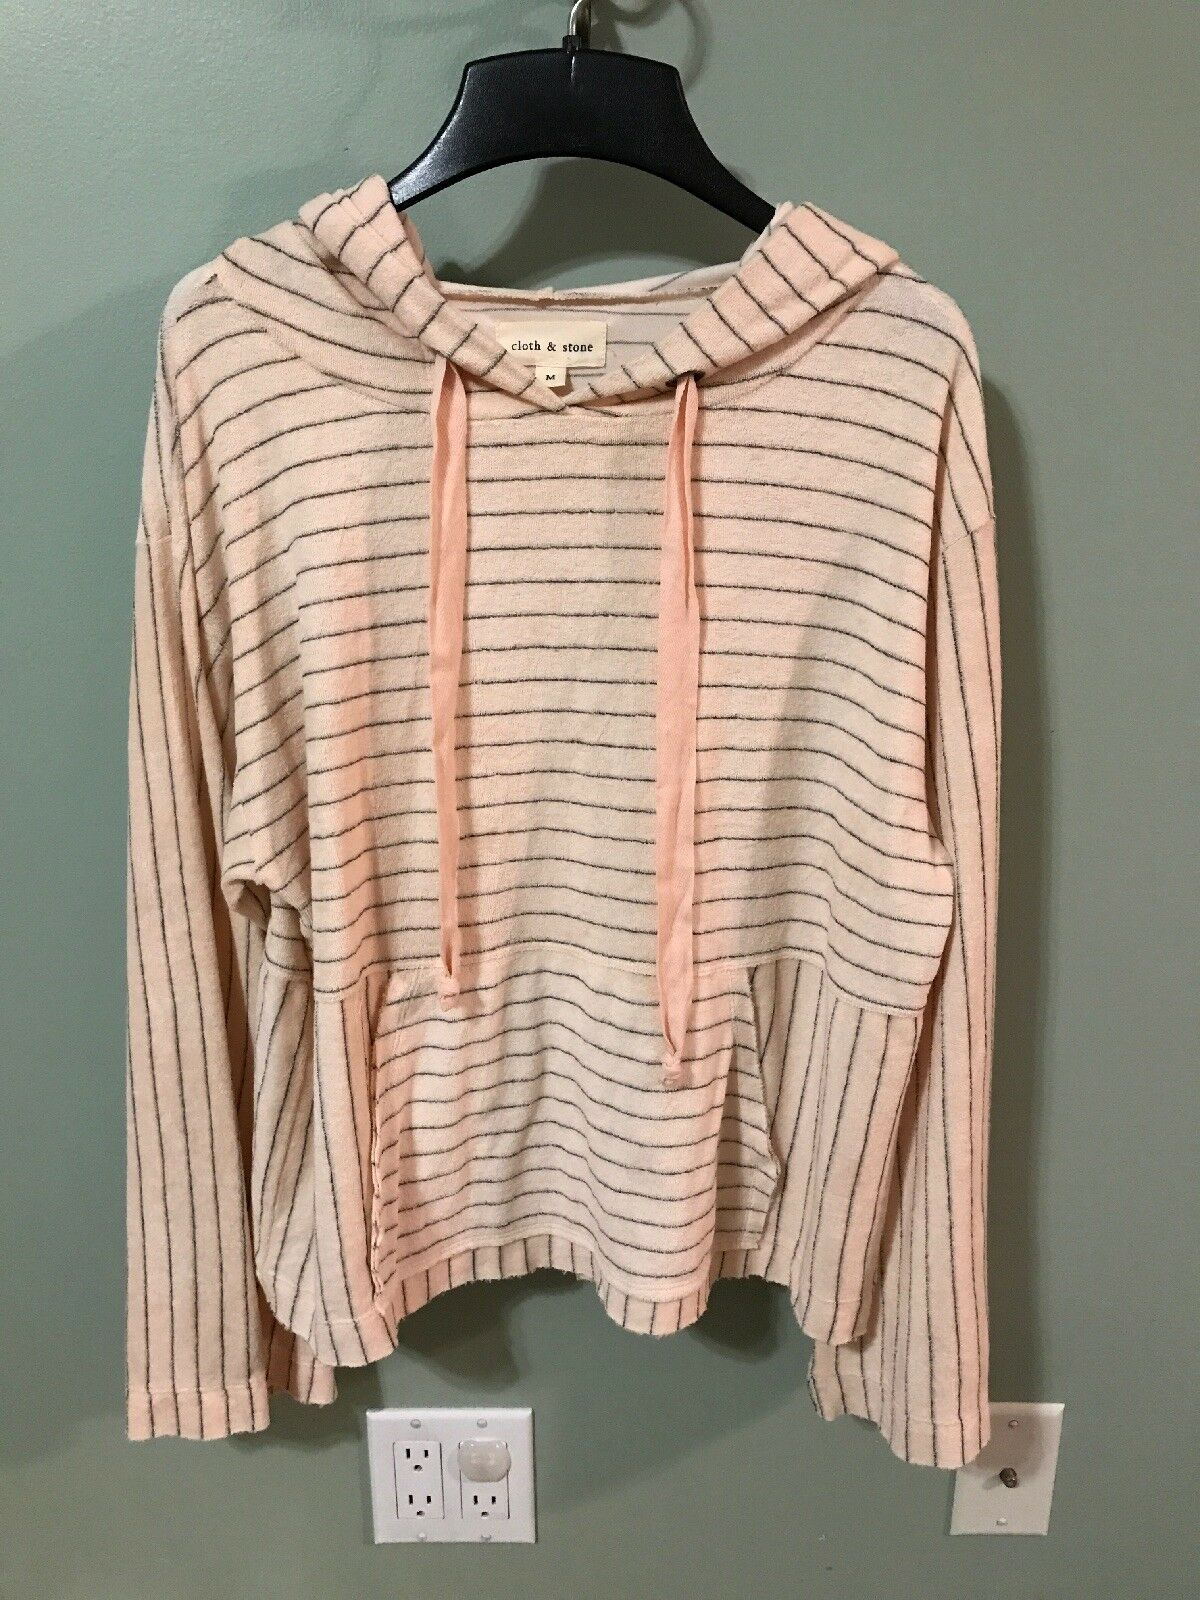 New Cloth & Stone Striped Terry Cloth Hoodie Size Size Size Medium 034c11